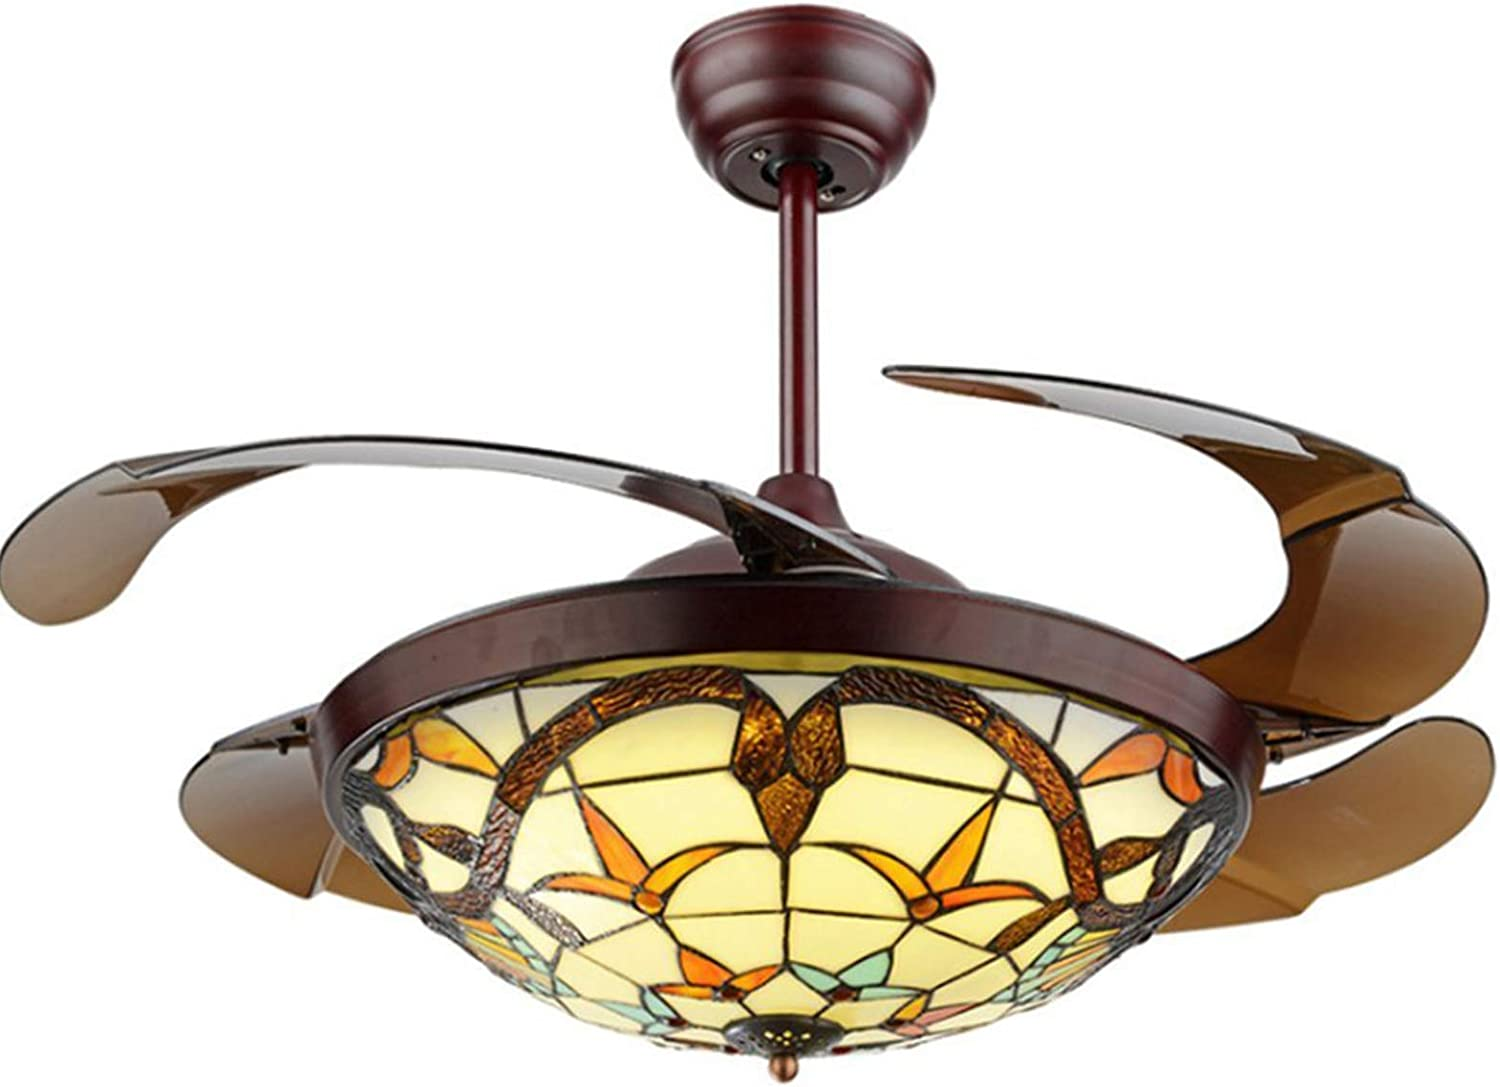 """Panda Lighting Tiffany Style Ceiling Fan with Light Indoor, Retractable Blades LED Chandelier Fan, 3 Color/3 Speed Classic Ceiling Fans Lighting Fixture with Remote Control for Dining Living Room 42"""""""